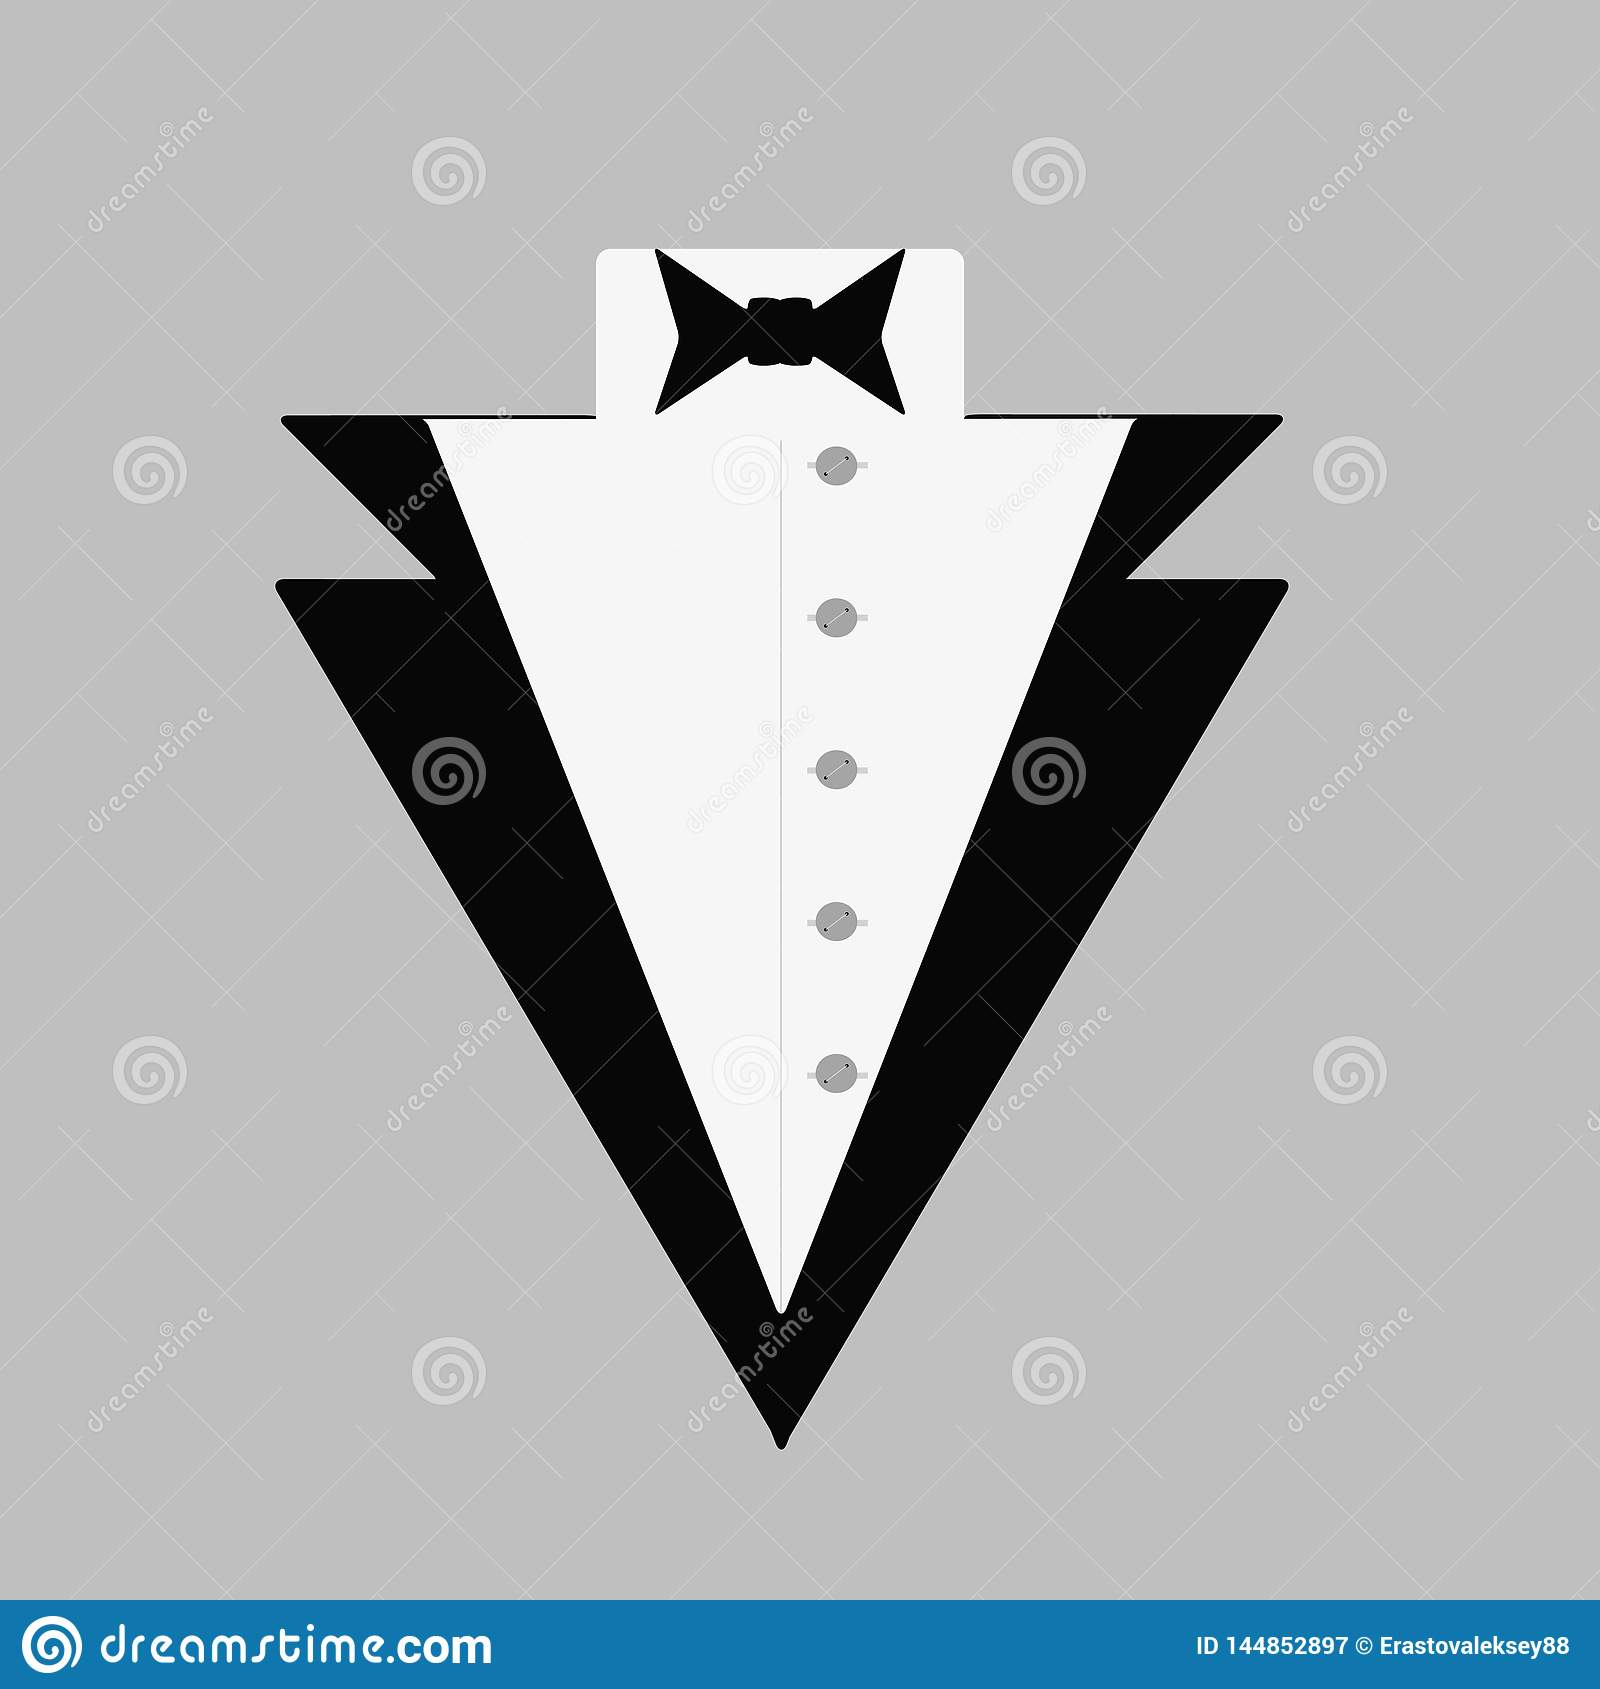 Man`s tuxedo with a bow tie and a button-down shirt. Gentleman`s logo. Vector illustration.